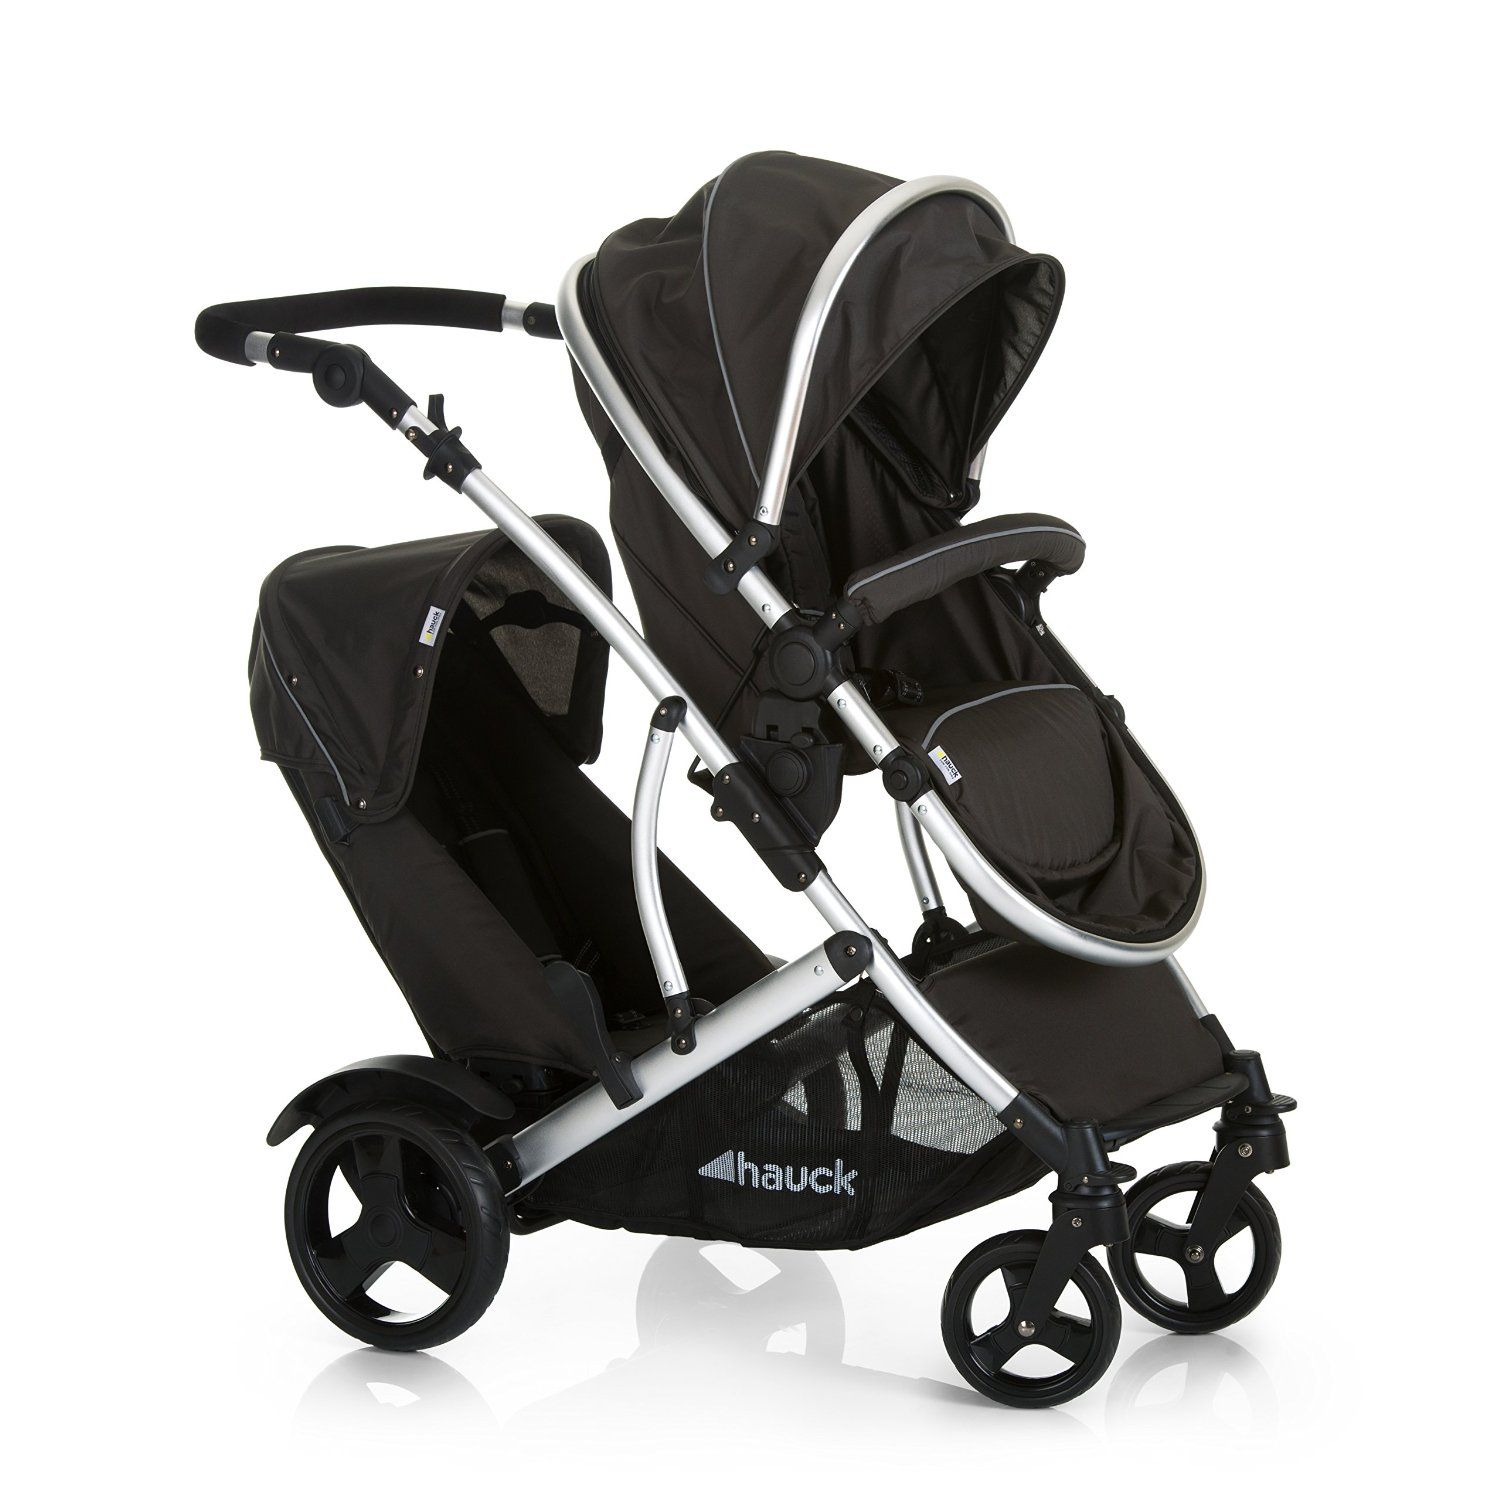 new hauck charcoal black duett 2 double tandem pushchair. Black Bedroom Furniture Sets. Home Design Ideas